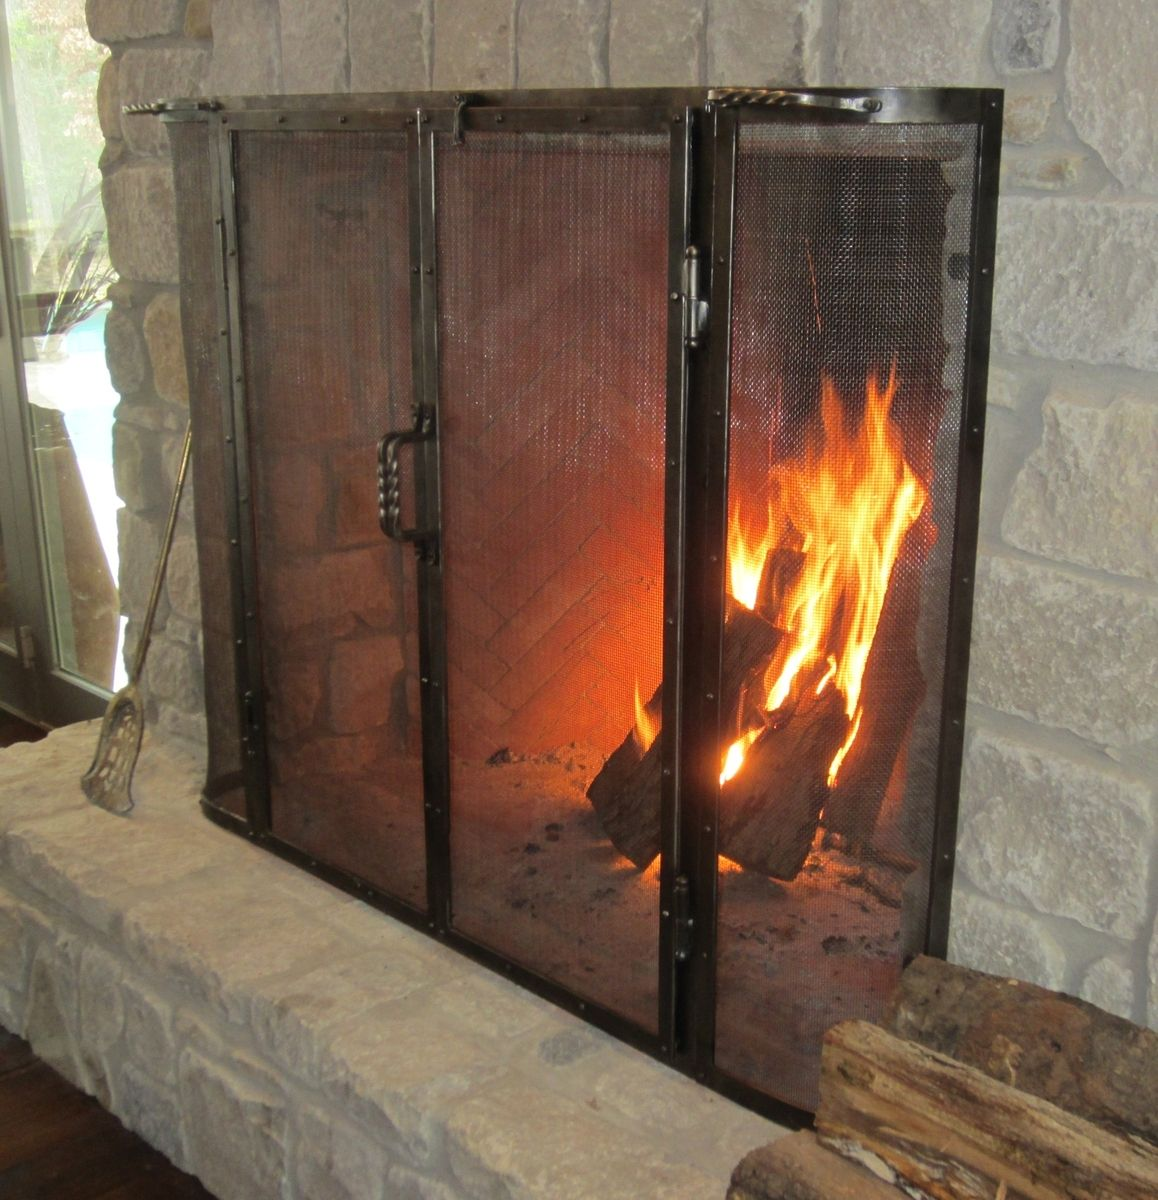 Custom Firescreen For Rumford Fireplace with stone mantel kit matched with wooden floor ideas